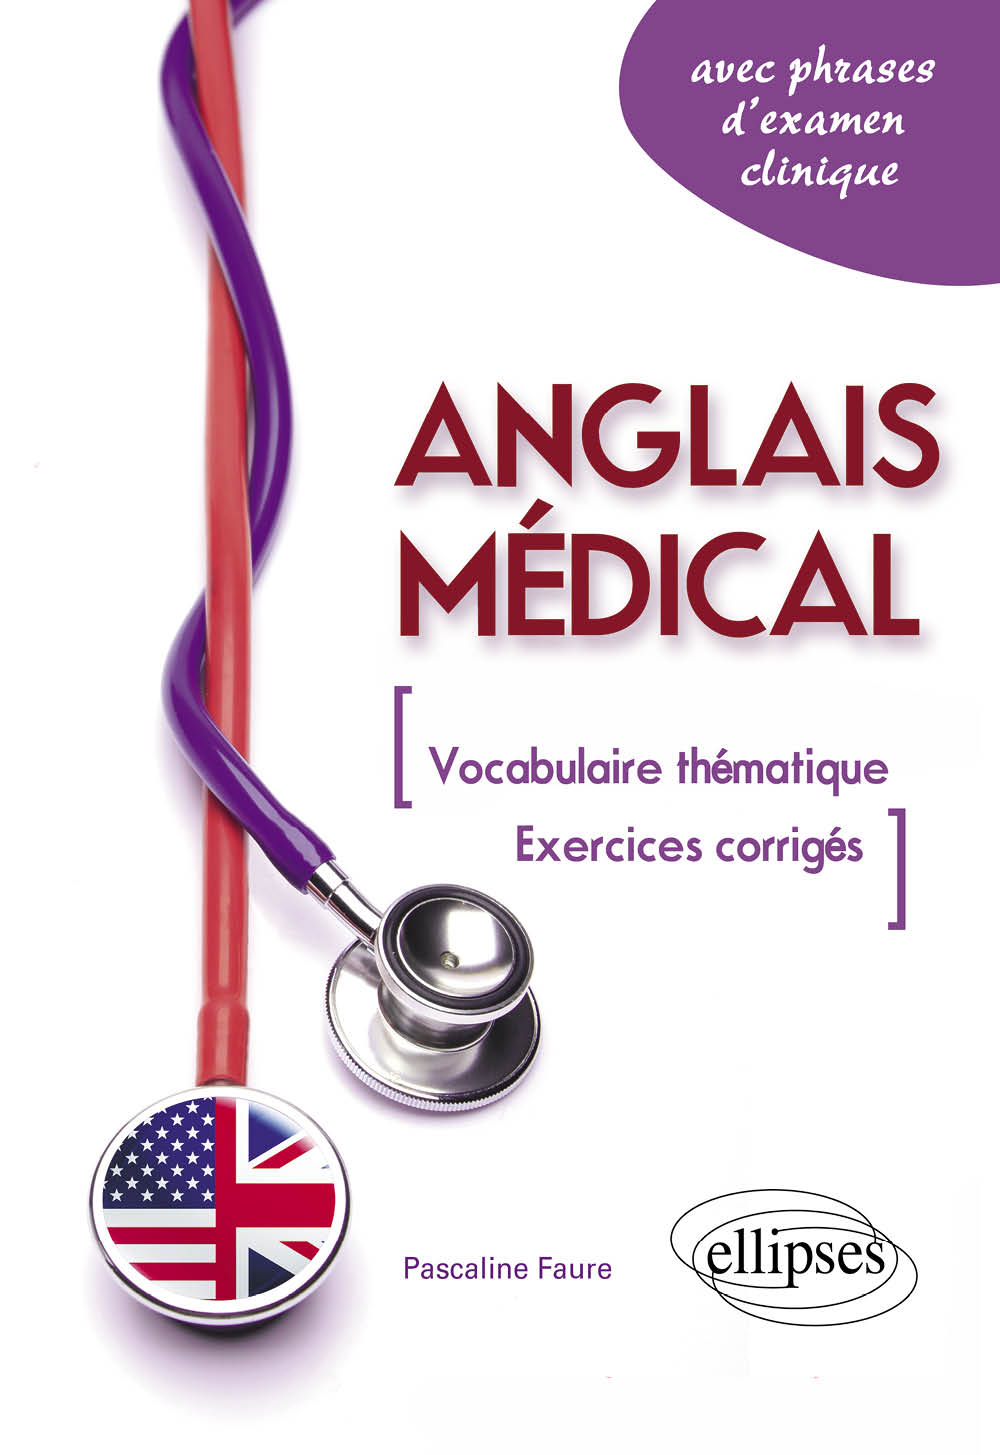 Anglais m�dical.  Fiches de vocabulaire th�matique et exercices corrig�s